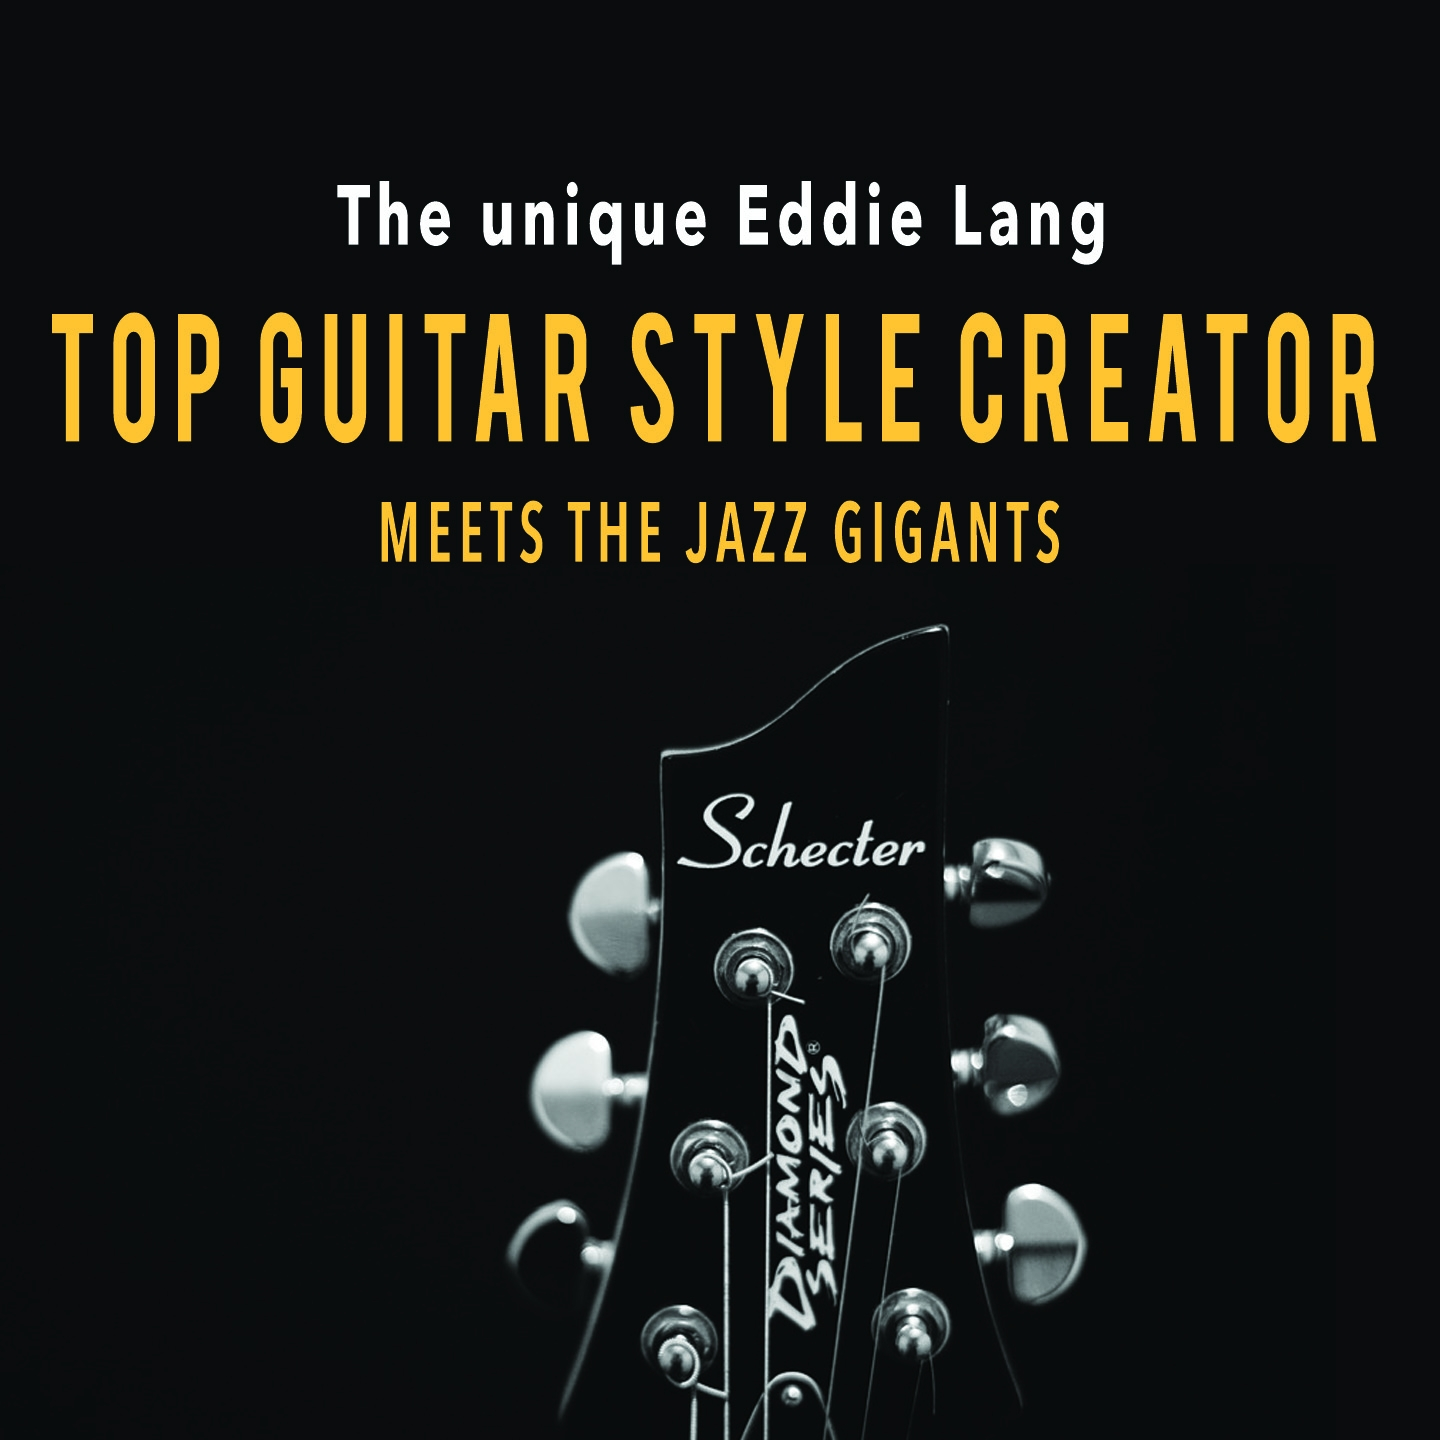 The Unique Eddie Lang: Top Guitar Style Creator Meets the Jazz Giants